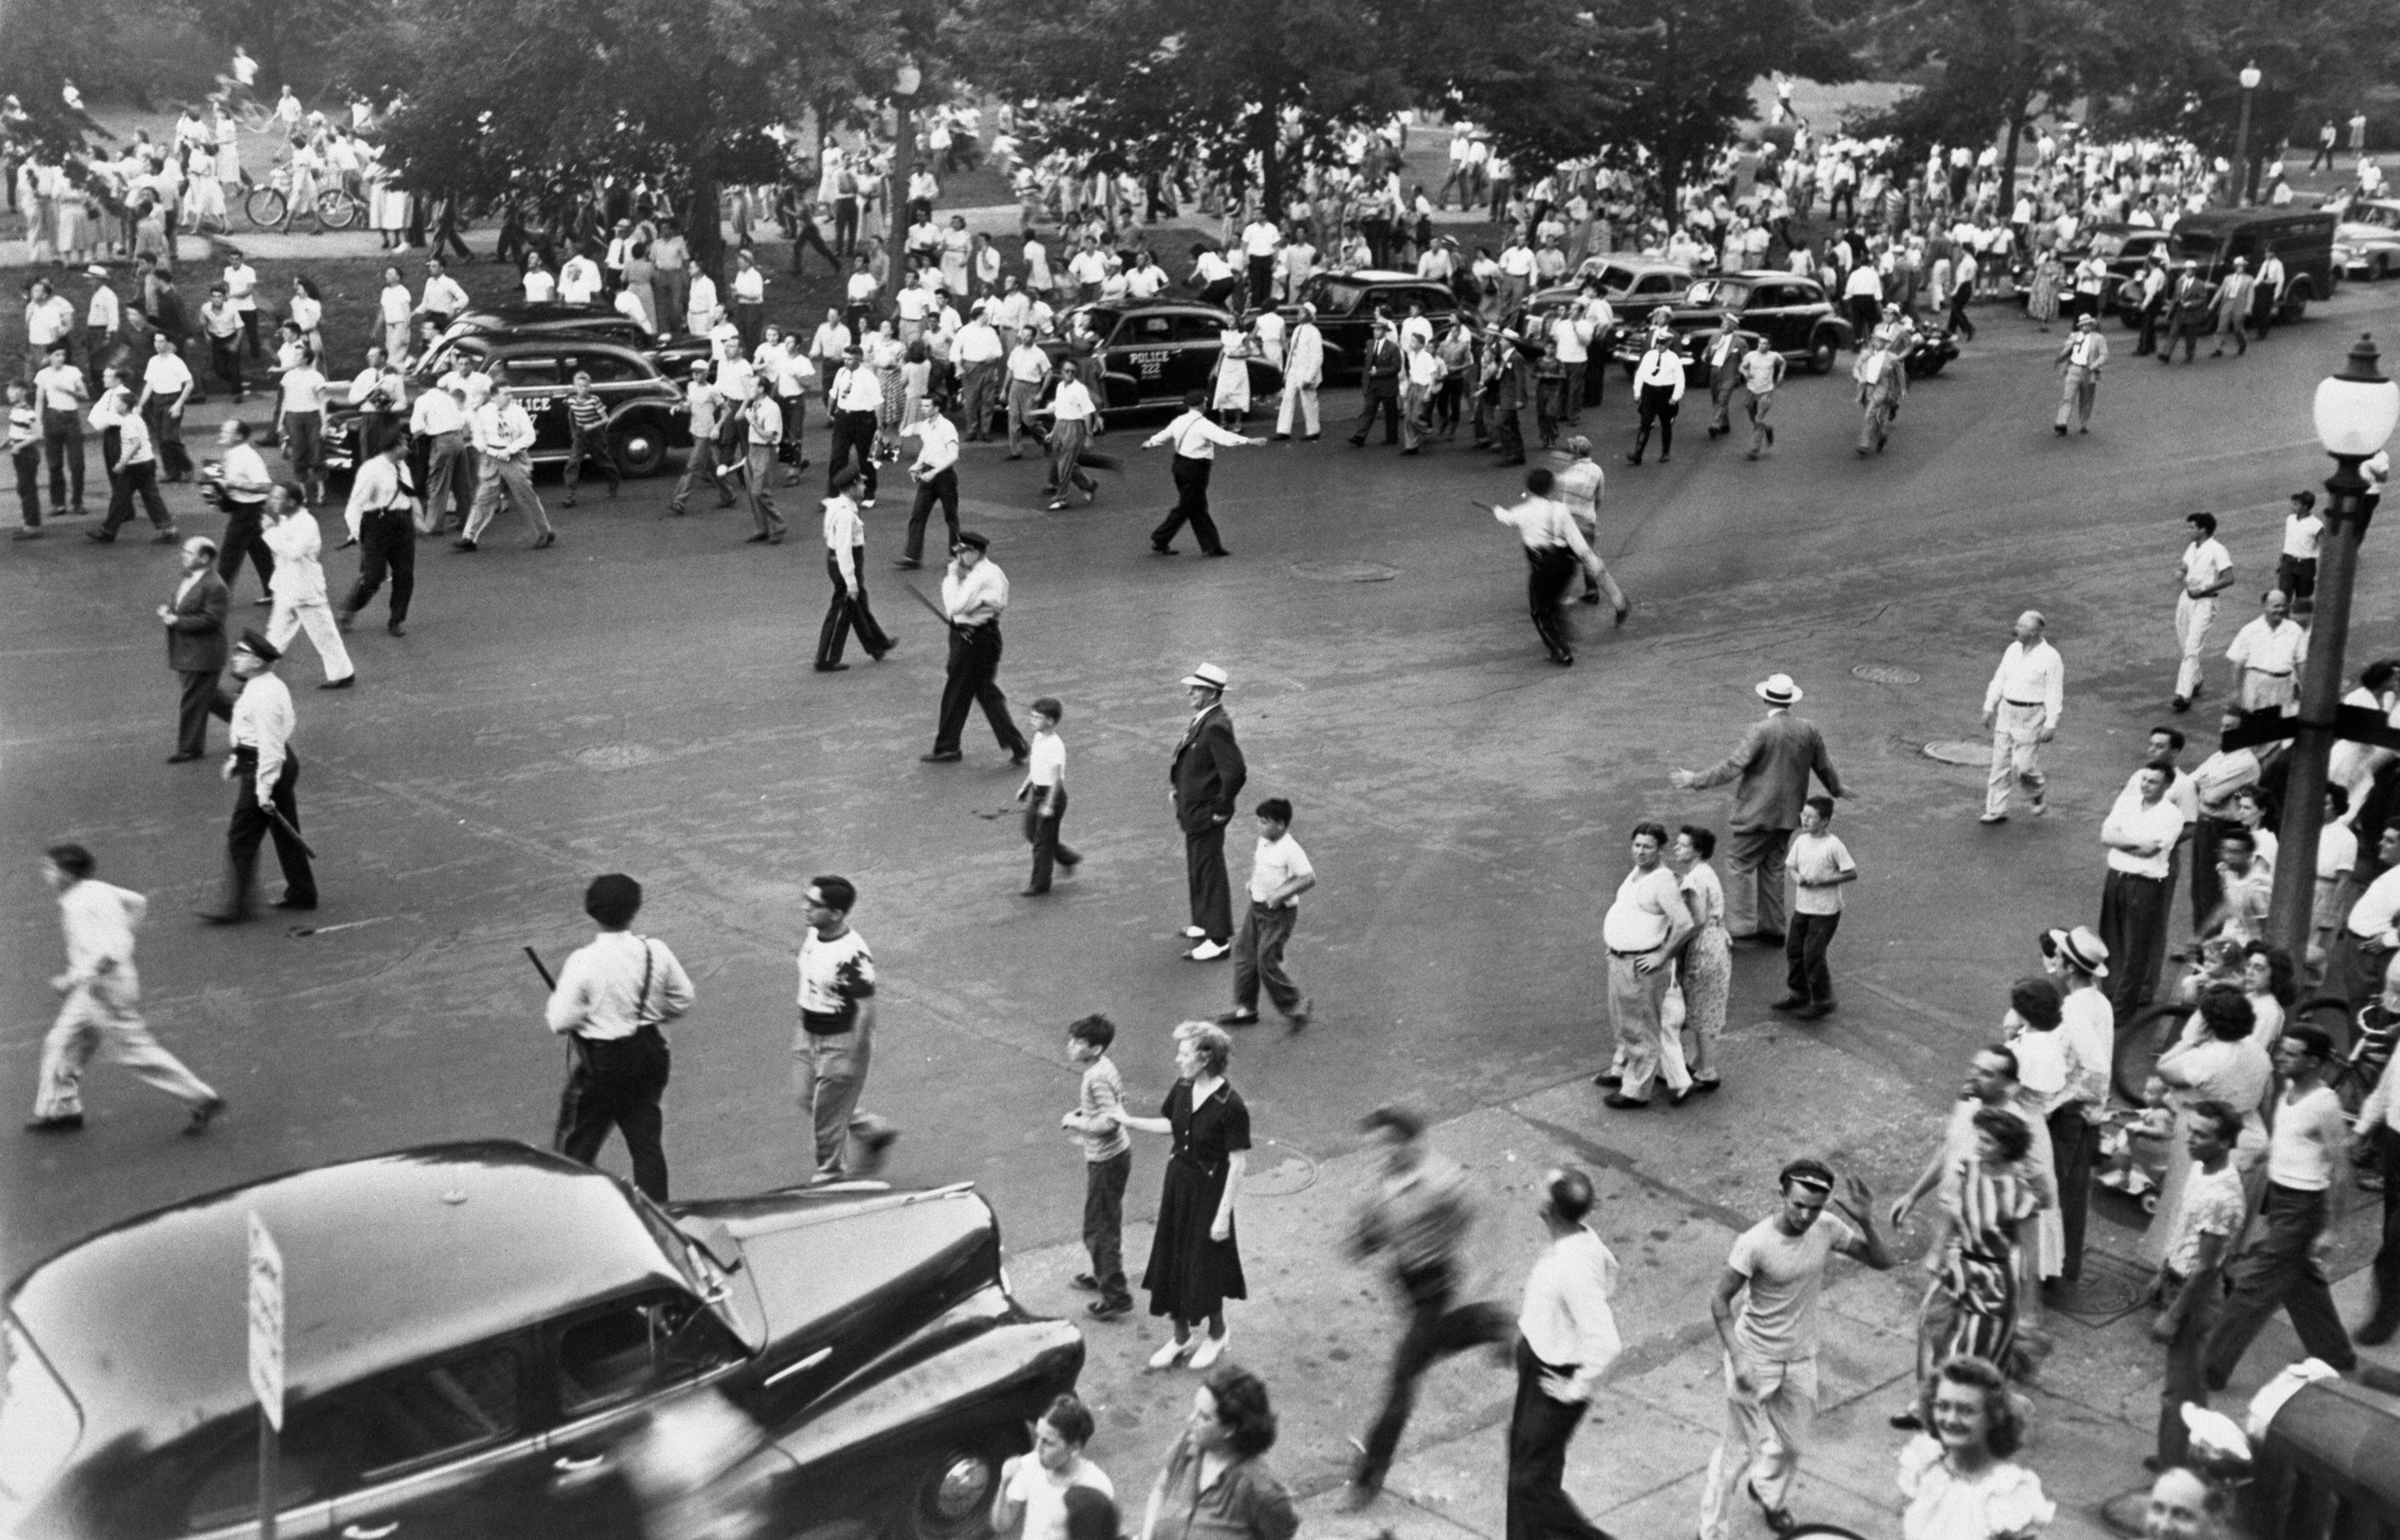 Police armed with nightsticks disperse part of a crowd of 5,000 persons during a race riot in St. Louis, June 21st